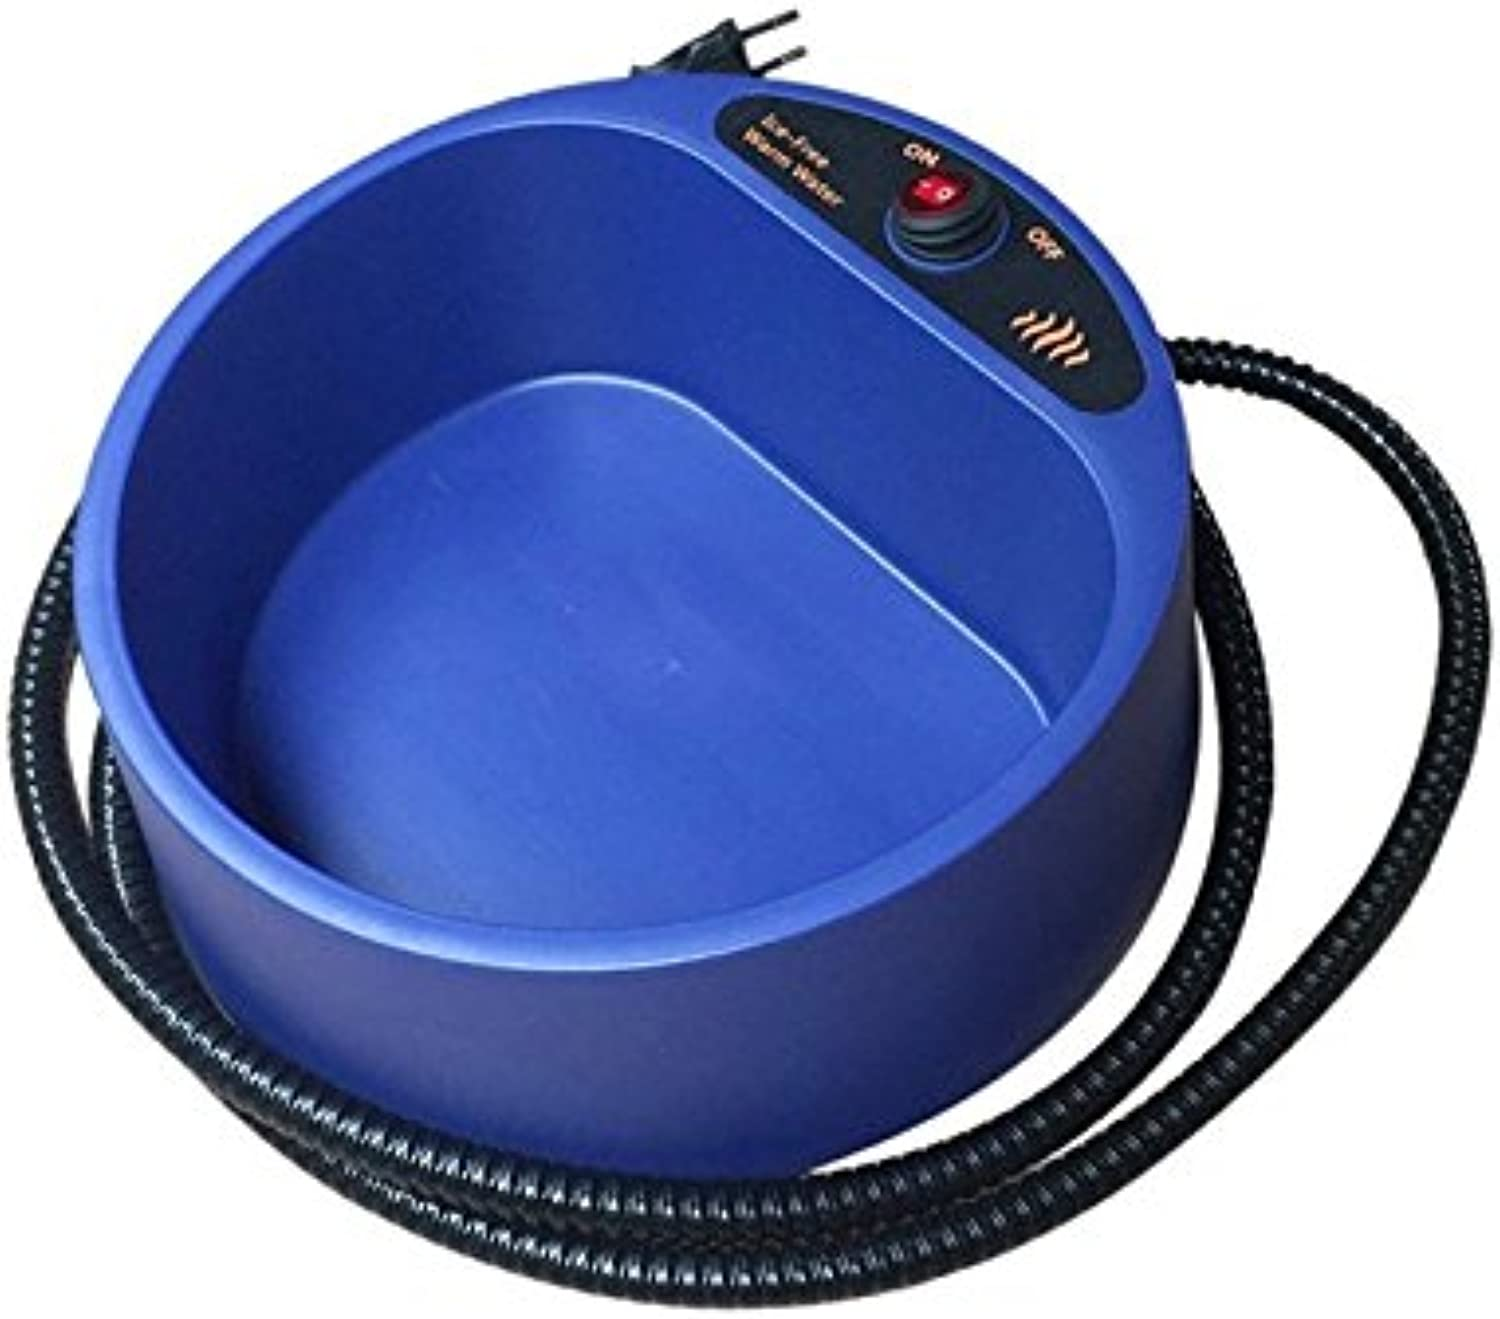 Fashionwu Dog Cat Pet Electronic Heated Water Bowl Dish Outdoor Thermal Water Feeder Heater bluee U.S.Specification